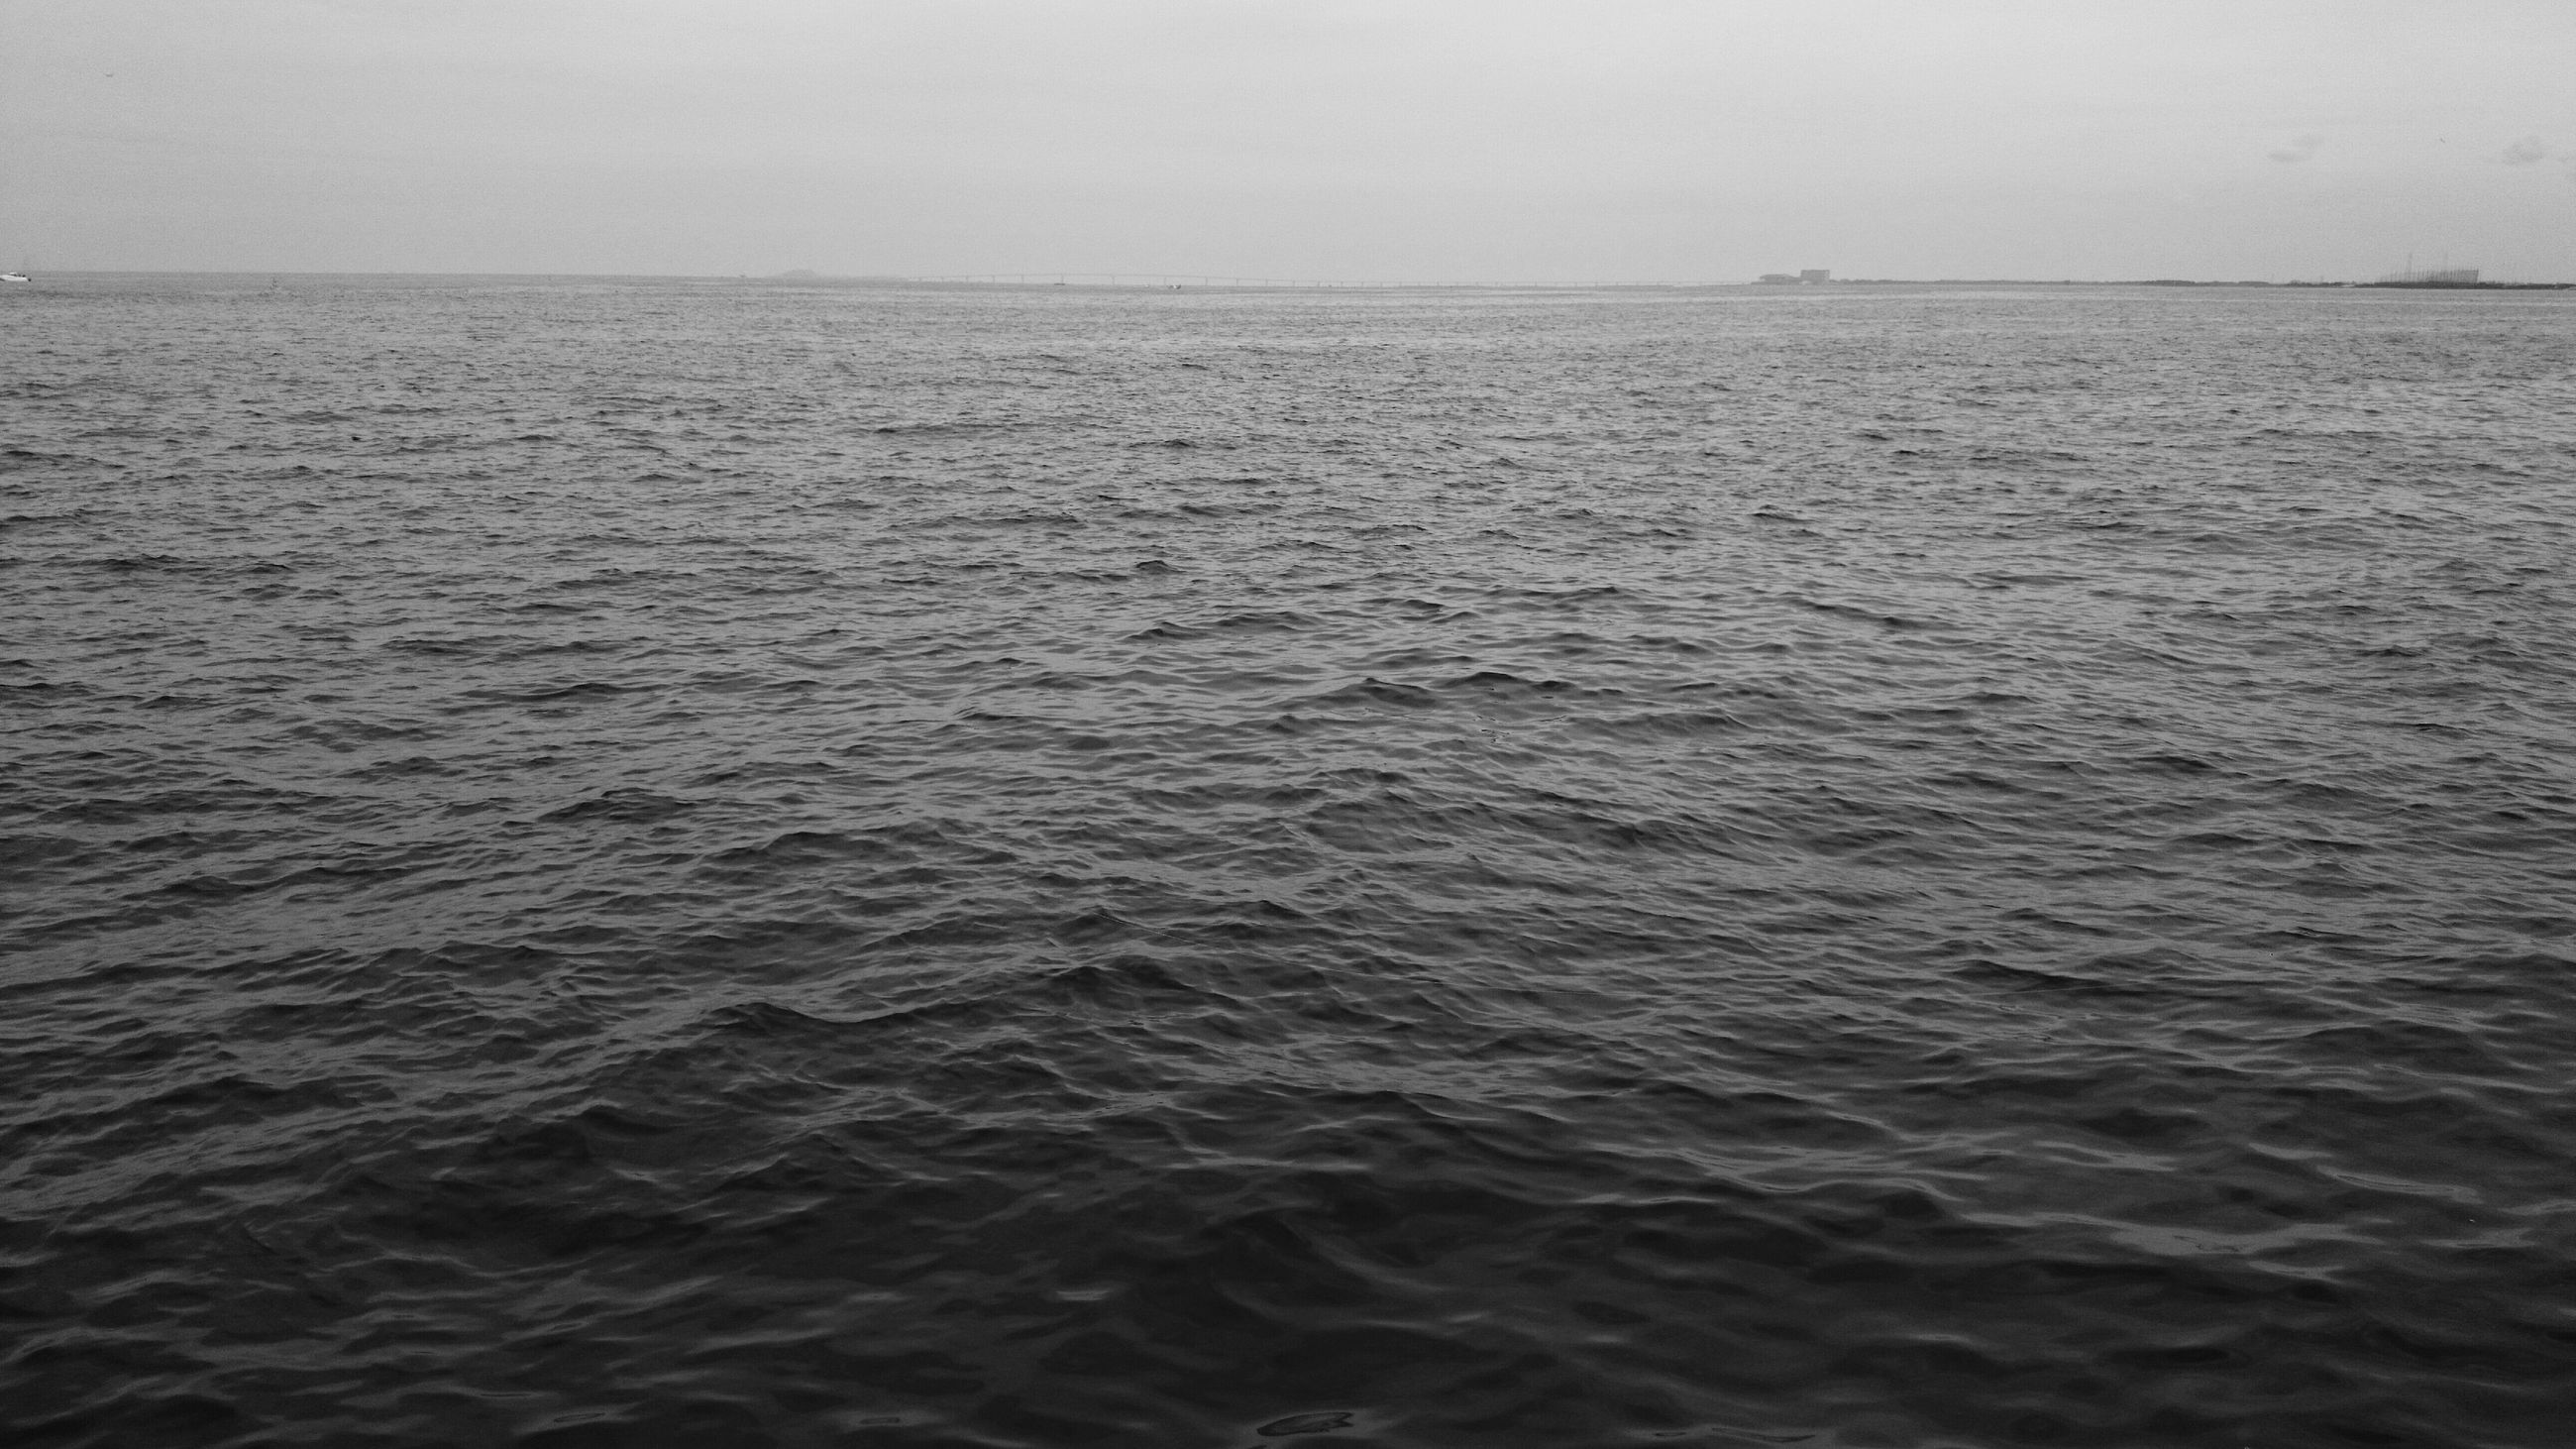 water, sea, waterfront, rippled, tranquil scene, tranquility, scenics, beauty in nature, horizon over water, seascape, nature, idyllic, water surface, wave, no people, outdoors, sky, day, remote, calm